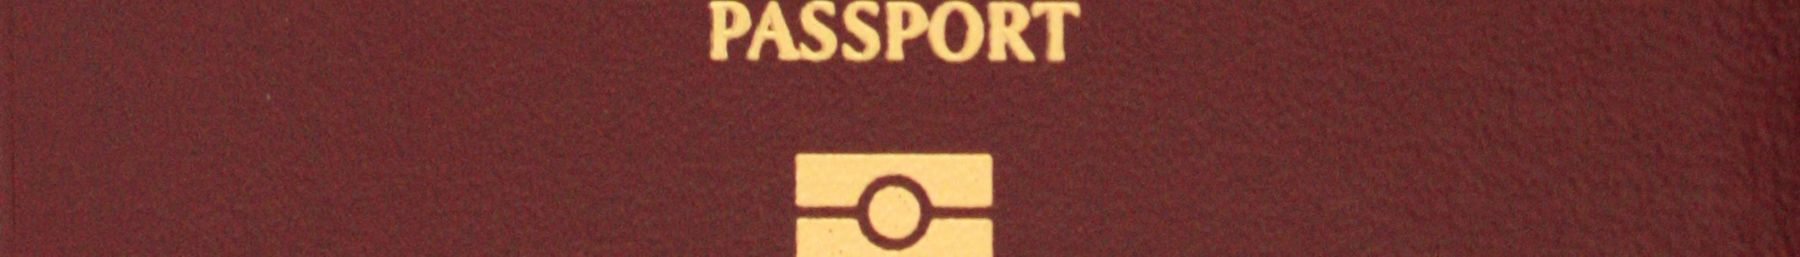 WV banner Passport.jpg